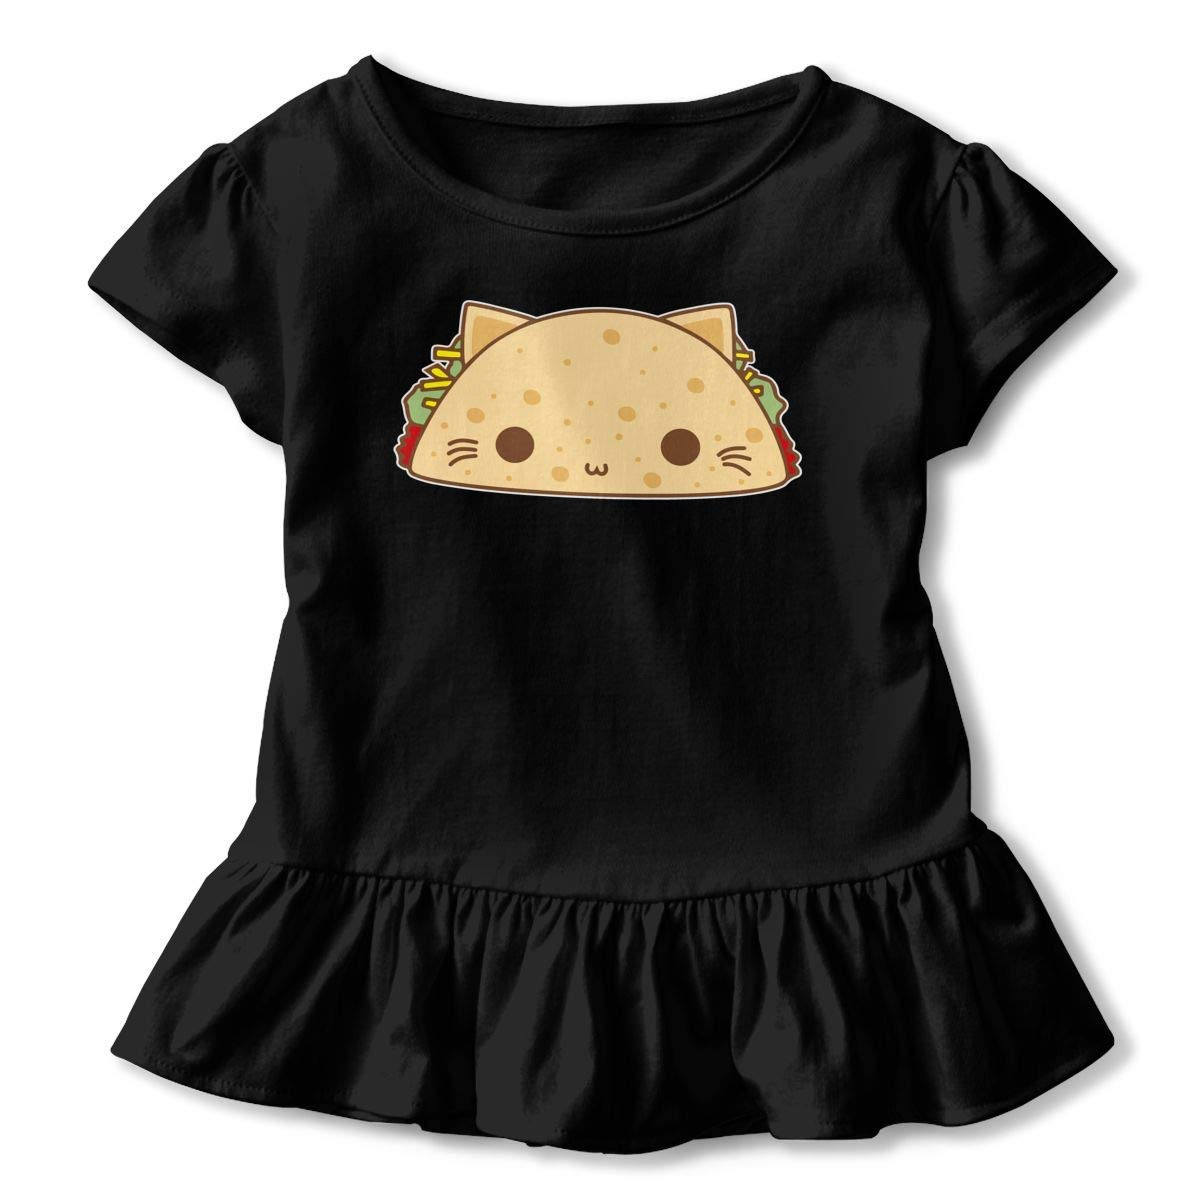 Kawaii Blouse Clothes with Falbala 2-6T PMsunglasses Short-Sleeve Taco Cats T-Shirts for Kids